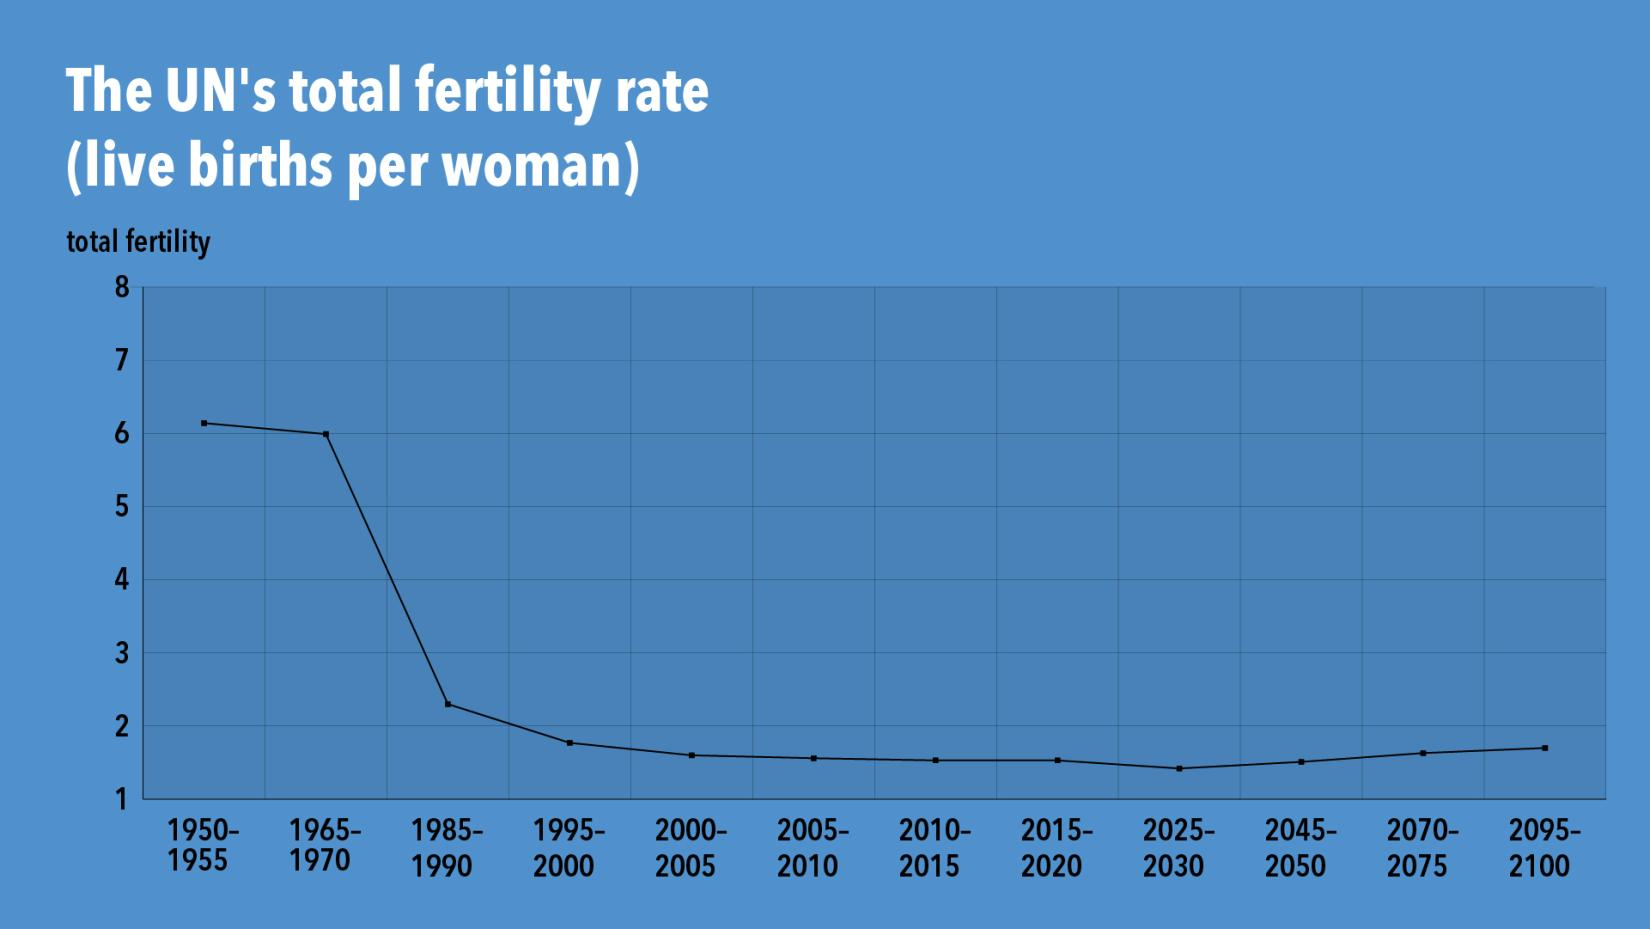 Thailand's population aging is mainly caused by the reduction in total fertility